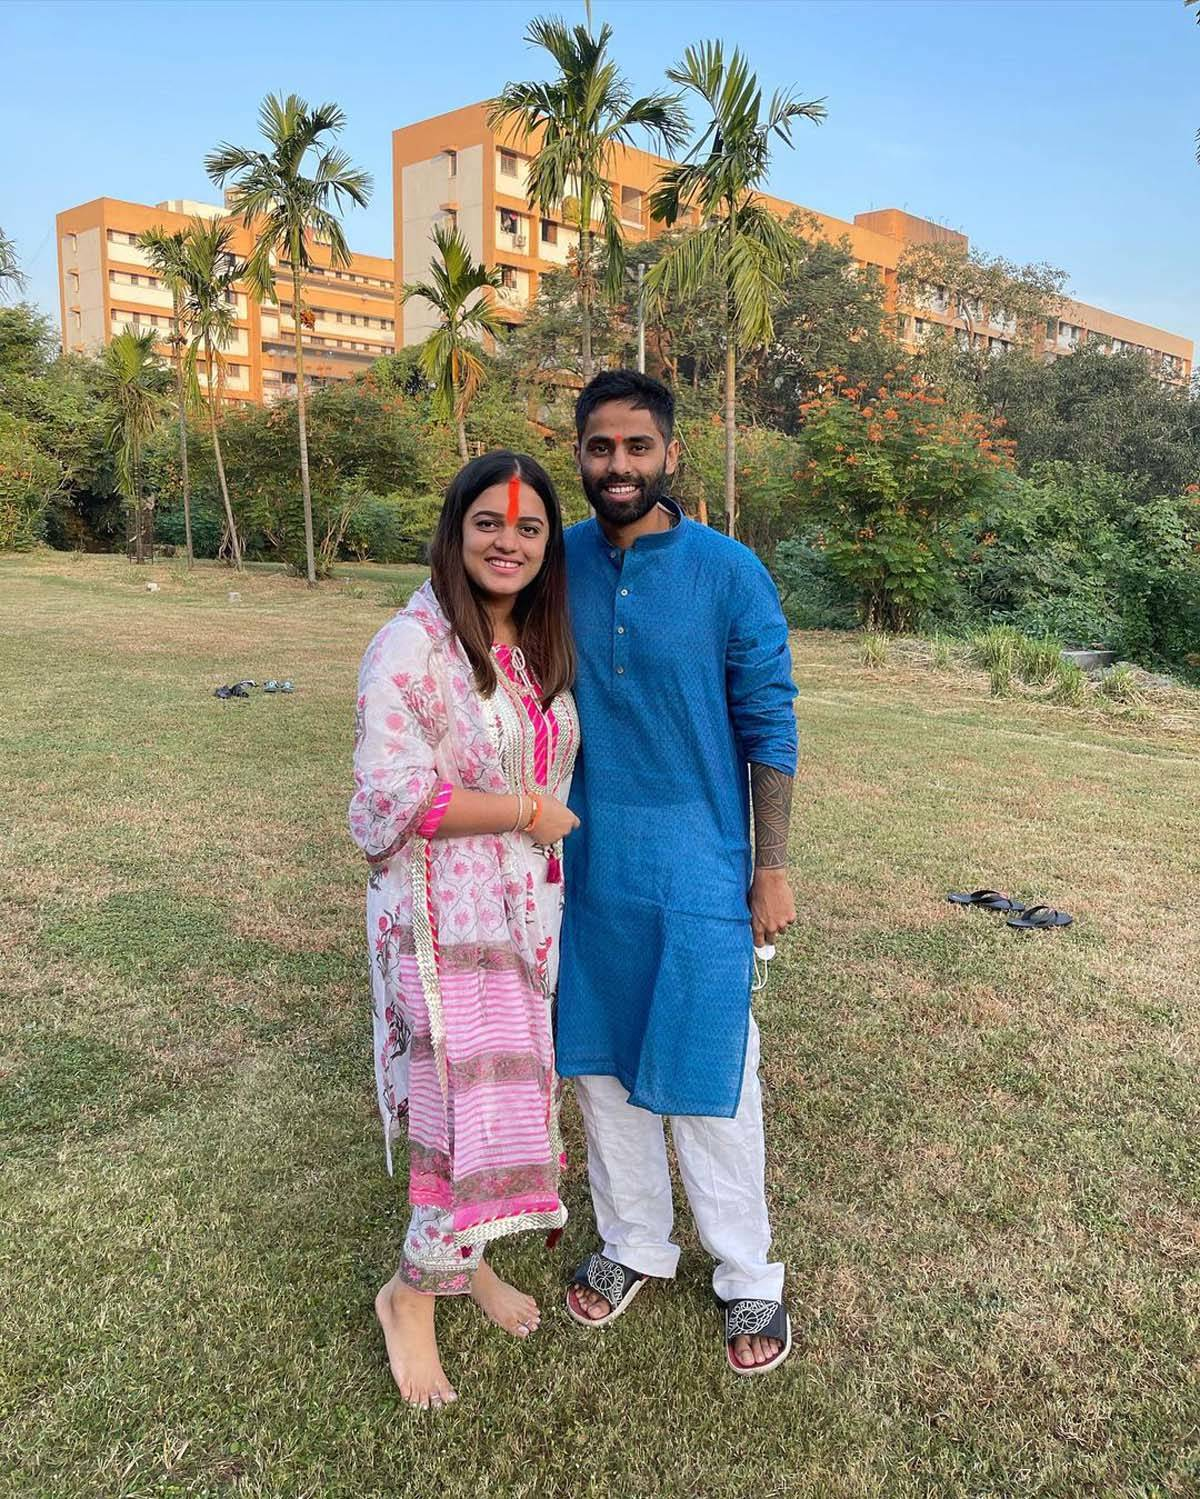 Picture perfect moments of cricketer Suryakumar Yadav and his wife Devisha